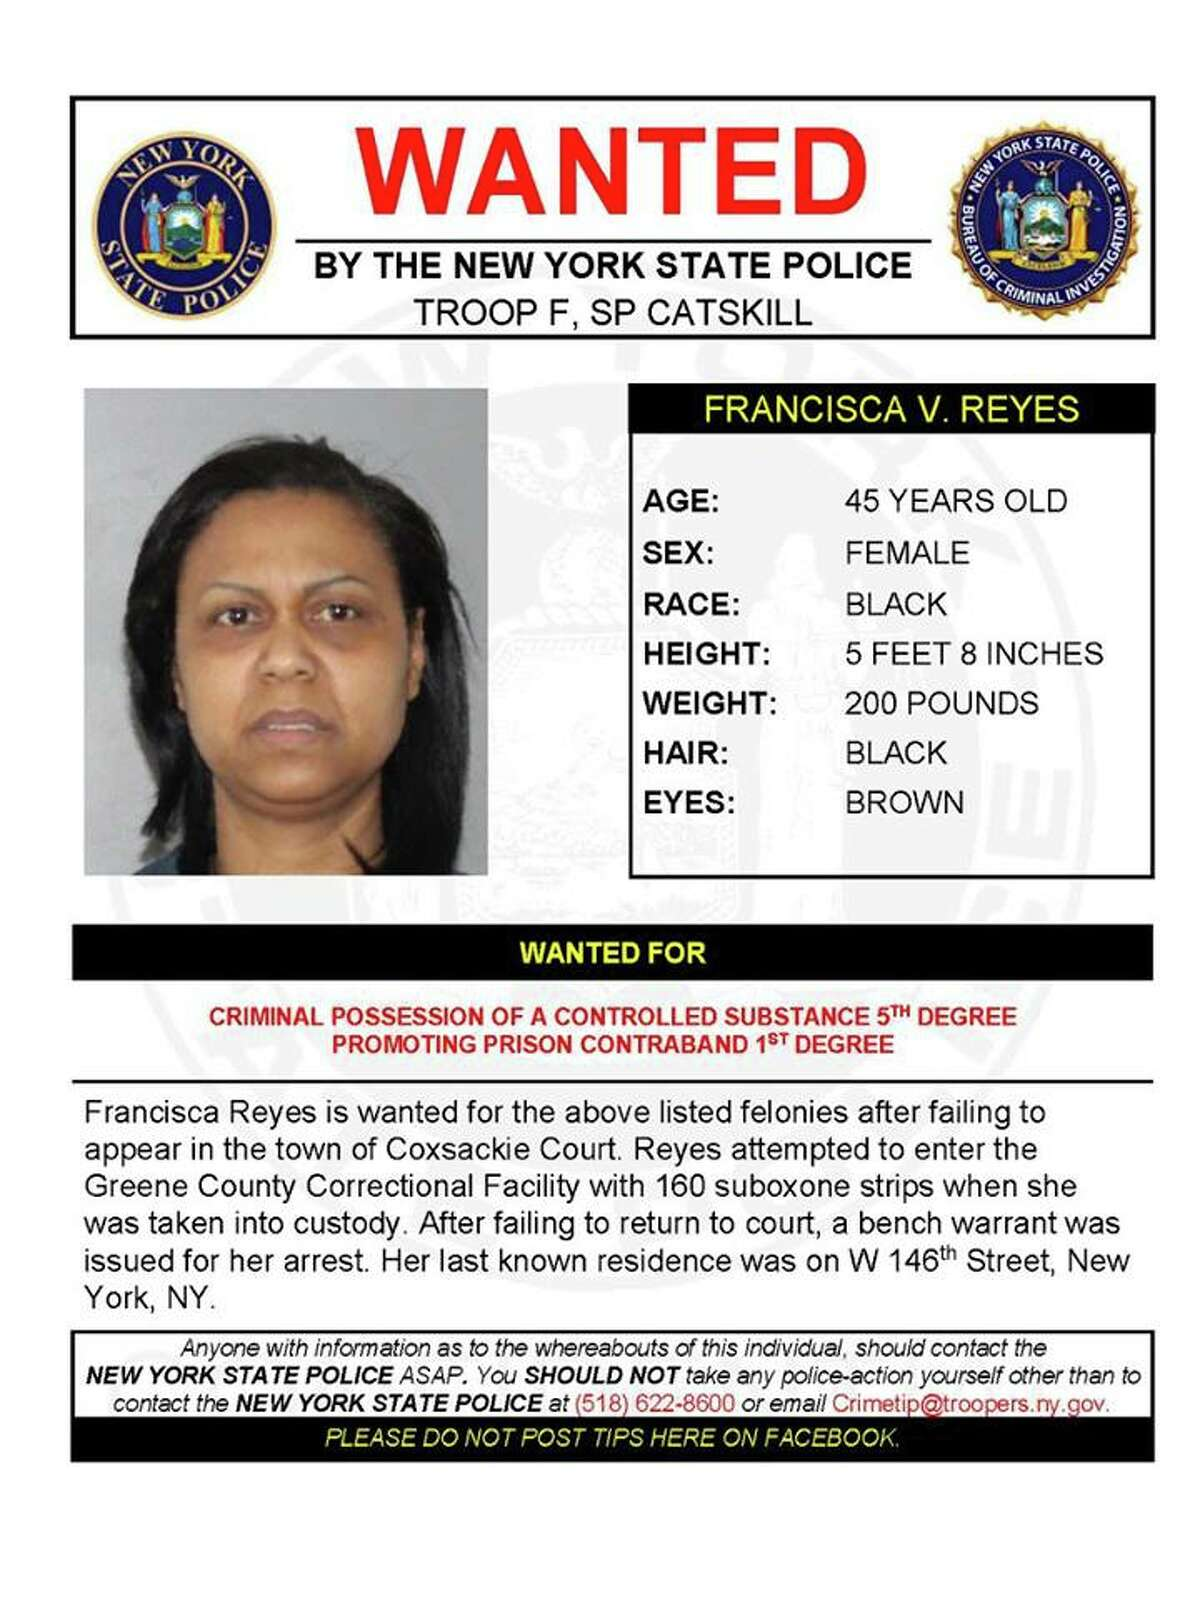 Francisca Reyes, 45, is wanted for criminal possession of a controlled substance and promoting prison contraband for allegedly attempting to enter the Greene County Correctional Facility with 160 suboxone strips. She was taken into custody but failed to appear in Coxsackie Town Court and a bench warrant was issued for her arrest. Her last known residence was on W 146th Street in New York City. (State Police)